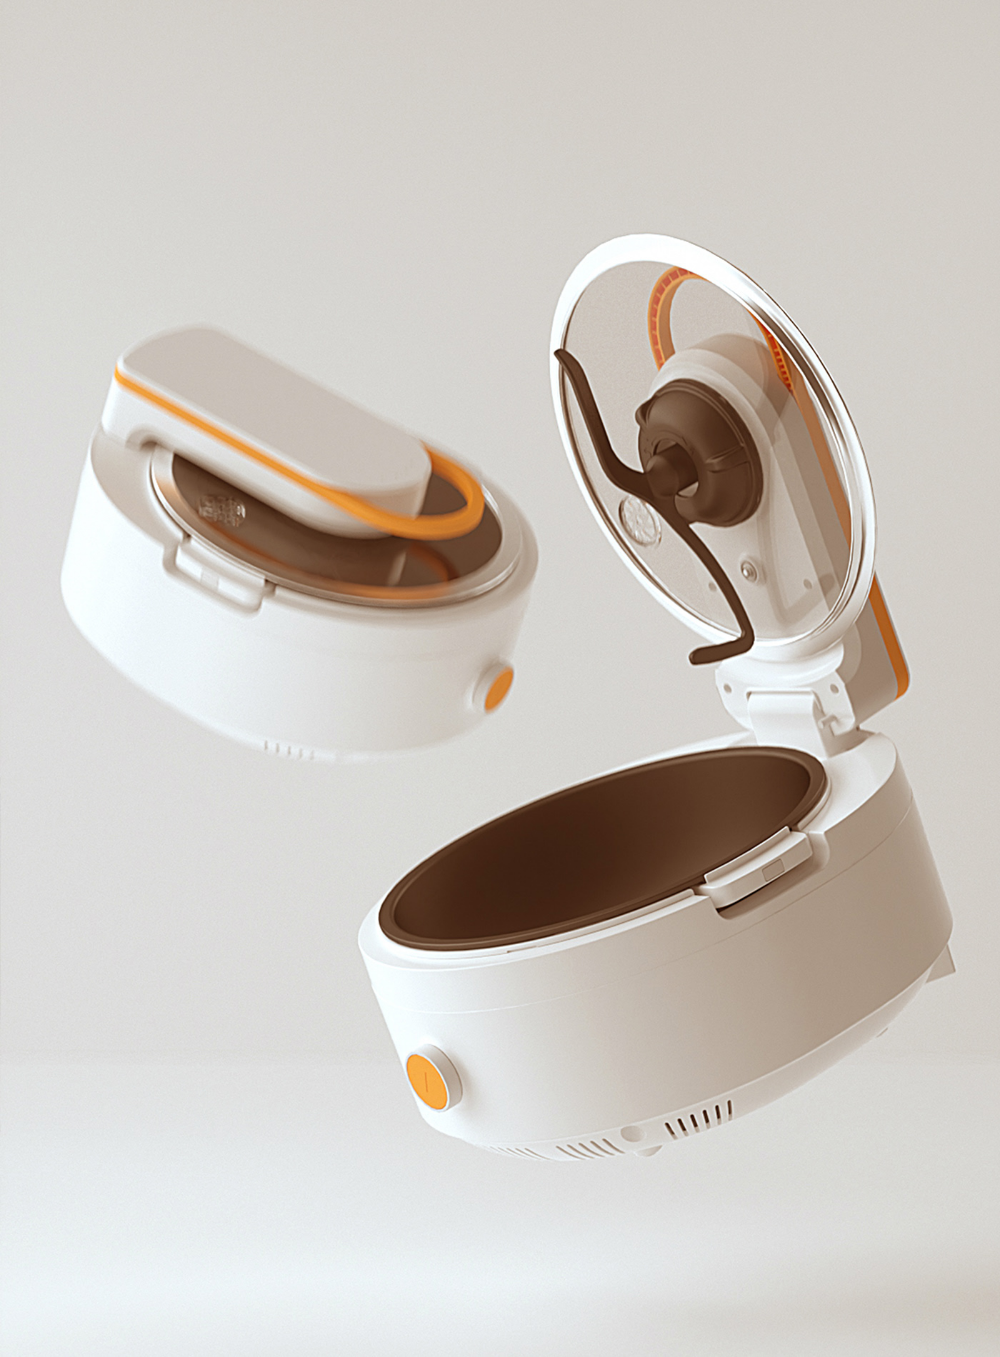 Automated Stir Fryer on Behance